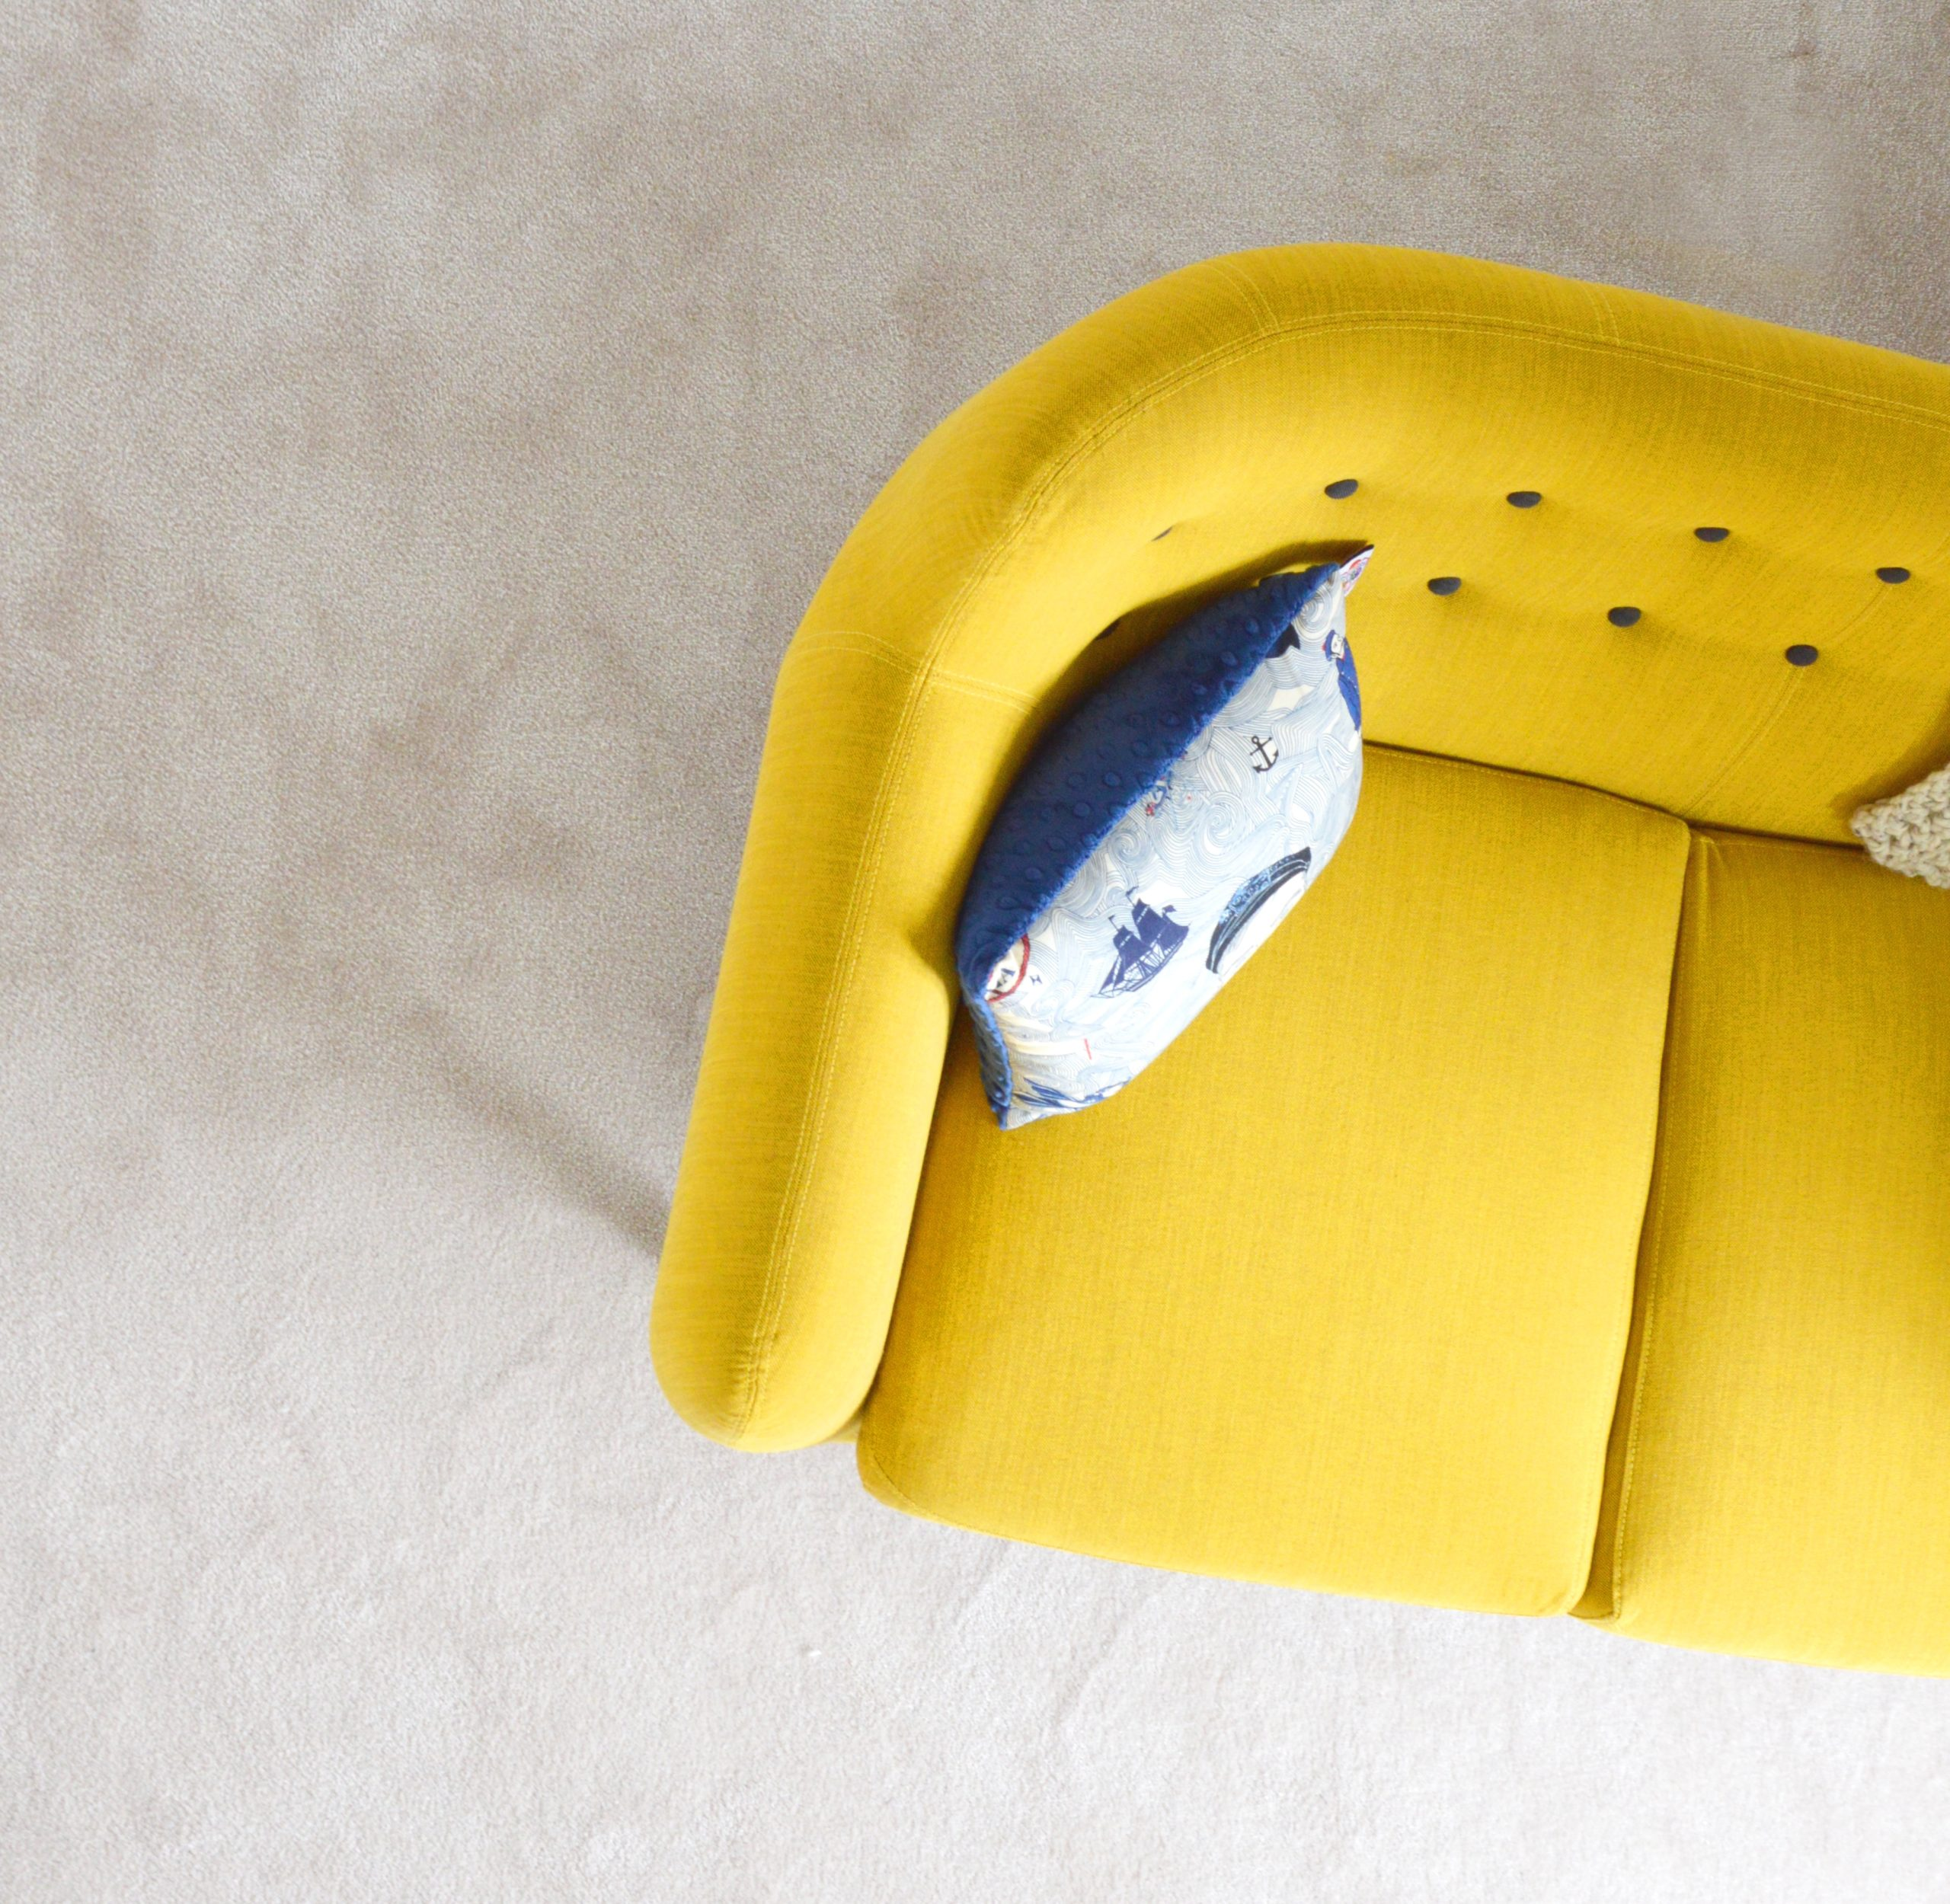 Yellow couch with pillow